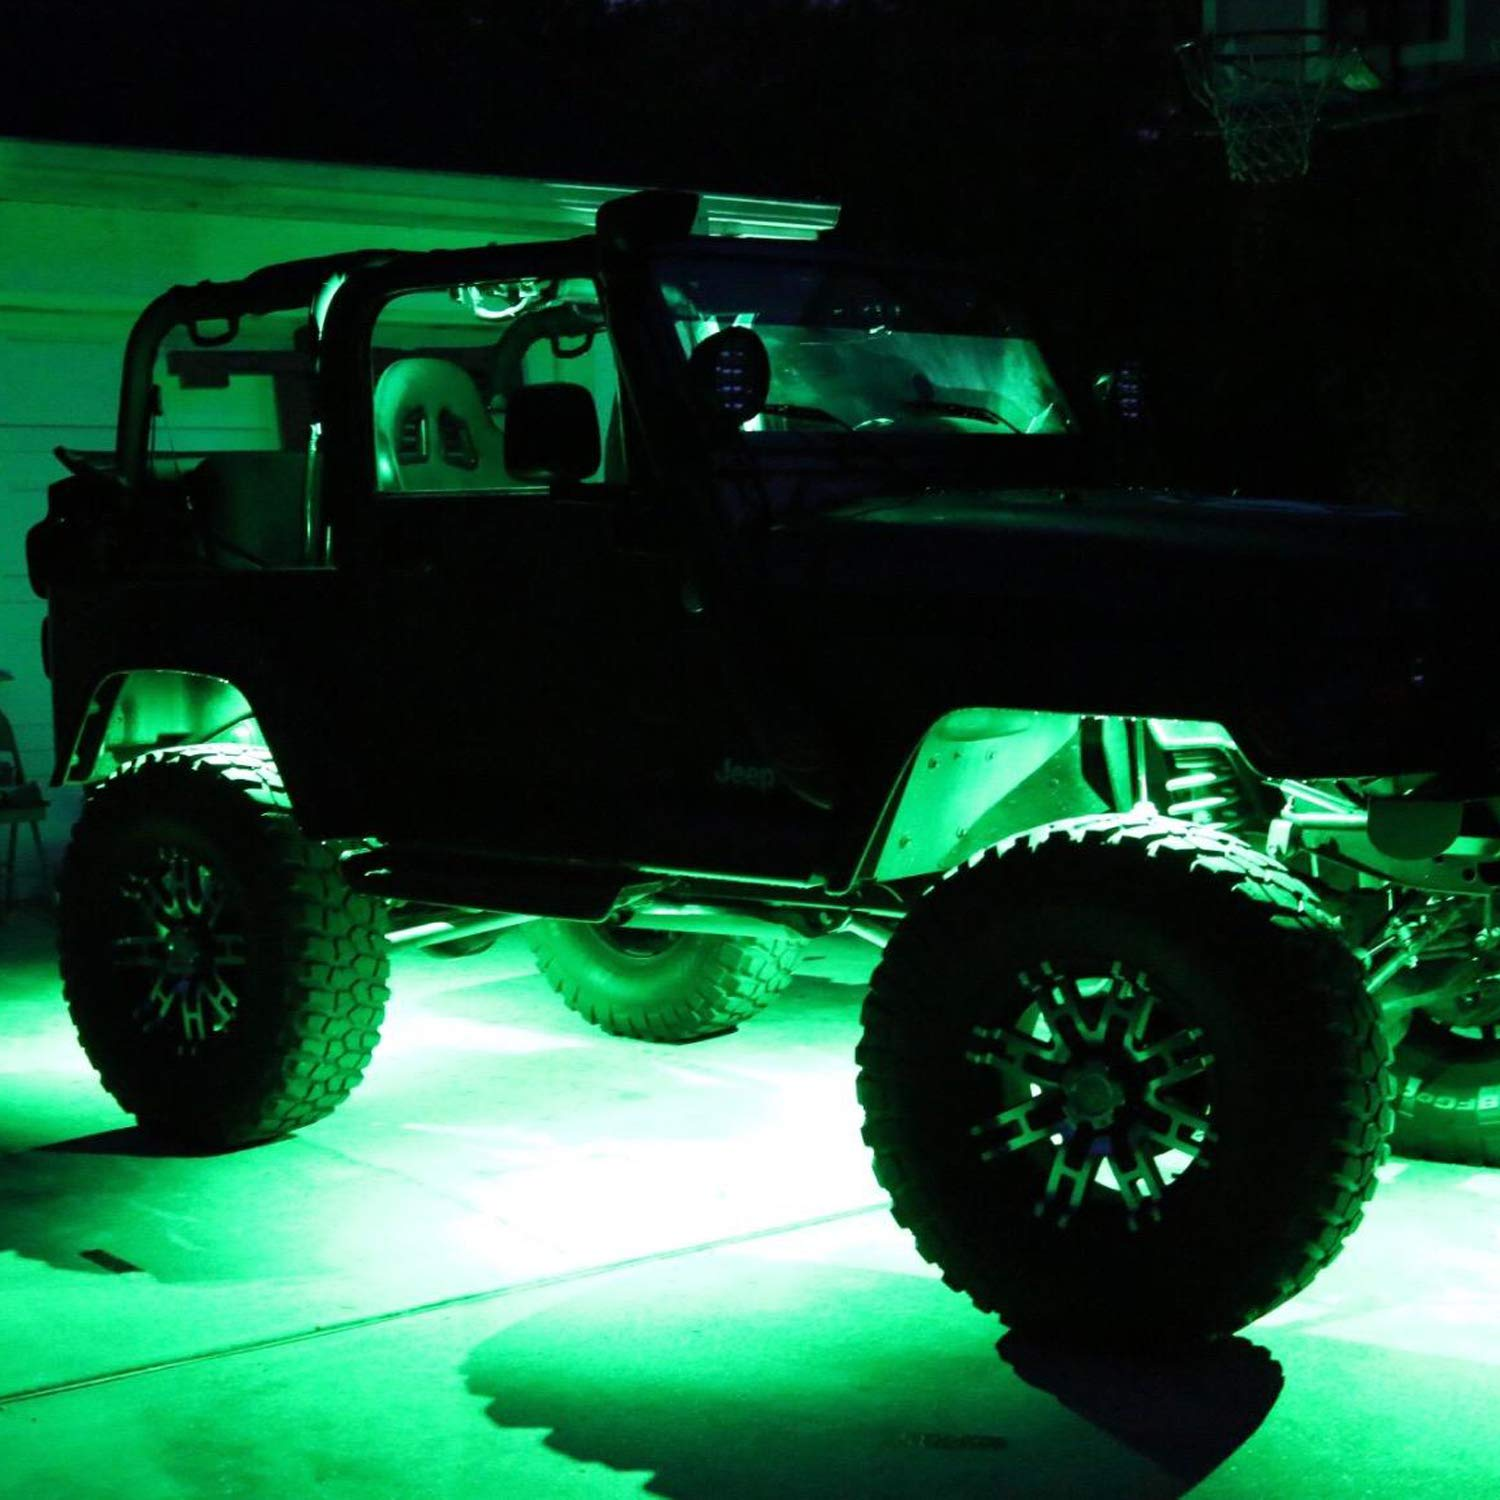 Red Ampper Waterproof LED Neon Underglow Light for Car Truck ATV UTV SUV Jeep Offroad Boat Underbody Glow Trail Rig Lamp 2 Pods LED Rock Lights